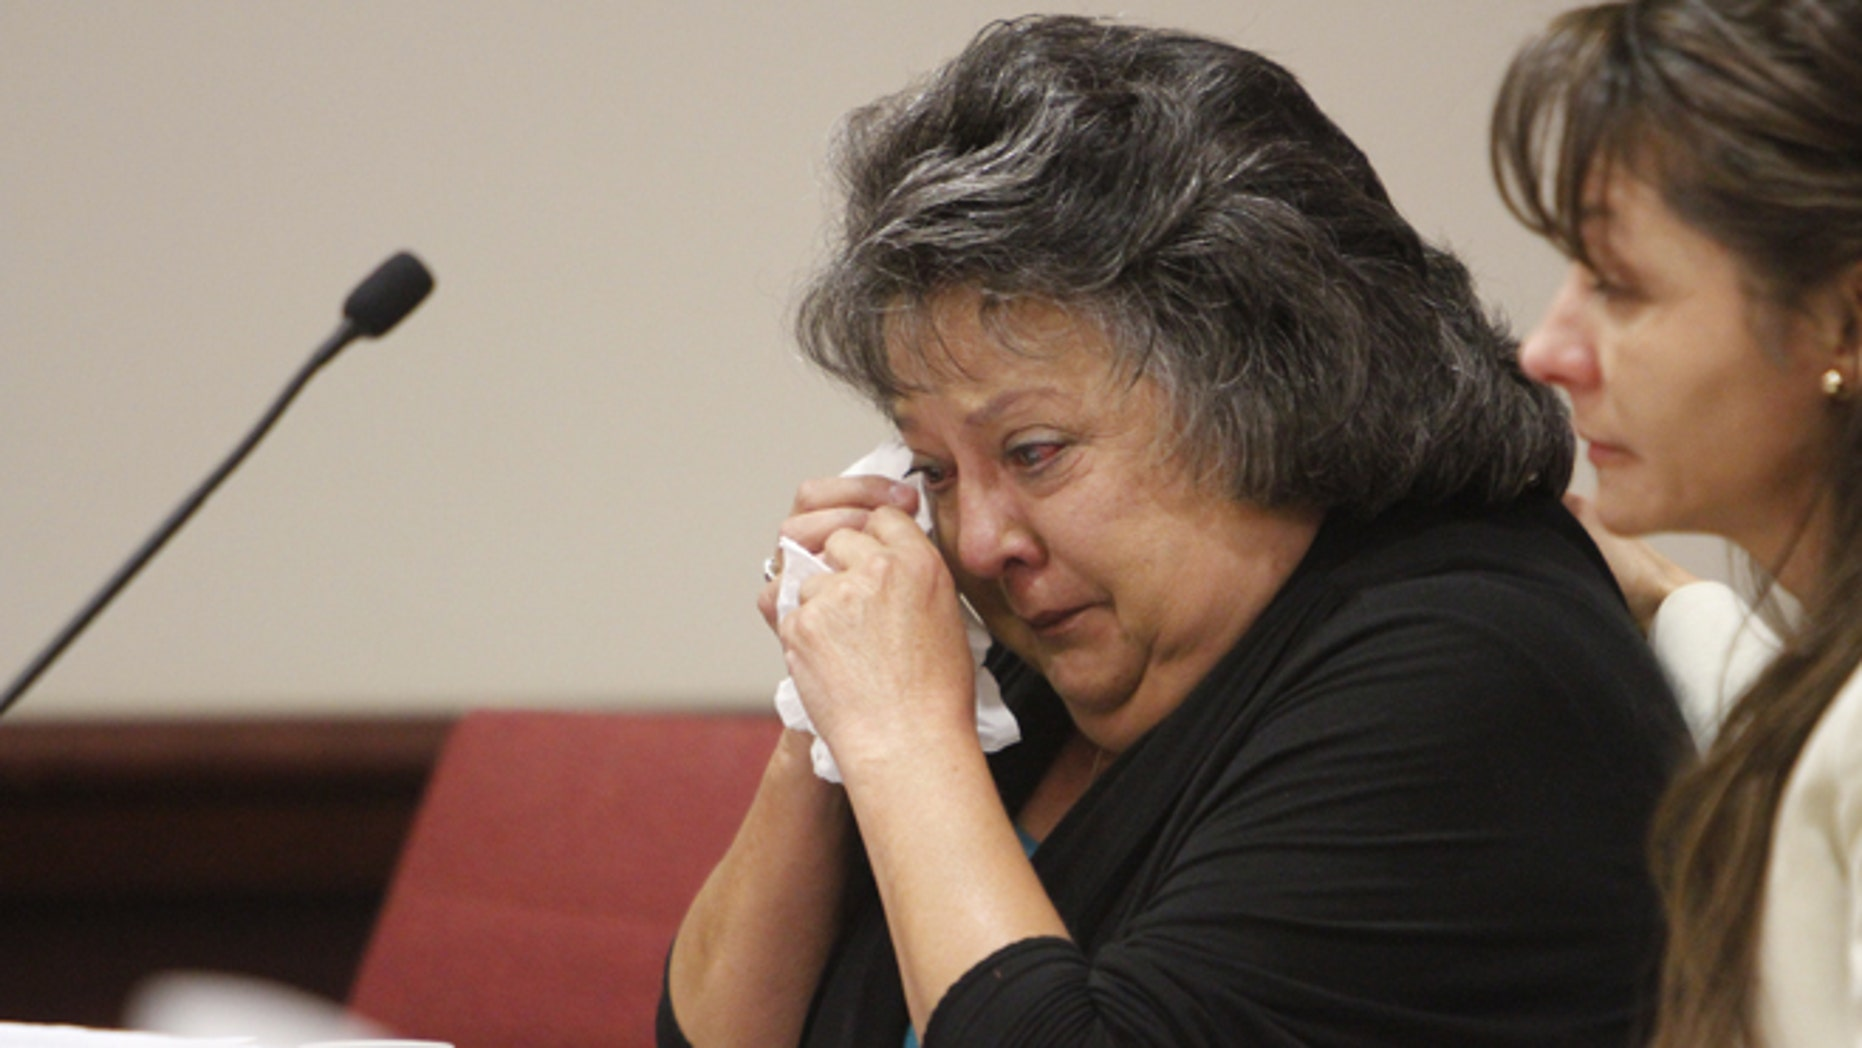 Former New Mexico Secretary of State Dianna Duran wipes away tears during her sentencing at Judge T. Glenn Ellington's district courtroom in Santa Fe, N.M., Monday, Dec. 14, 2015. Duran was sentenced to 30 days in jail for siphoning money from her election account to fuel a gambling addiction in a case that has led to calls for an overhaul of the stateâs campaign finance and ethics laws  (Luis Sanchez Saturno/Santa Fe New Mexican via AP) MANDATORY CREDIT